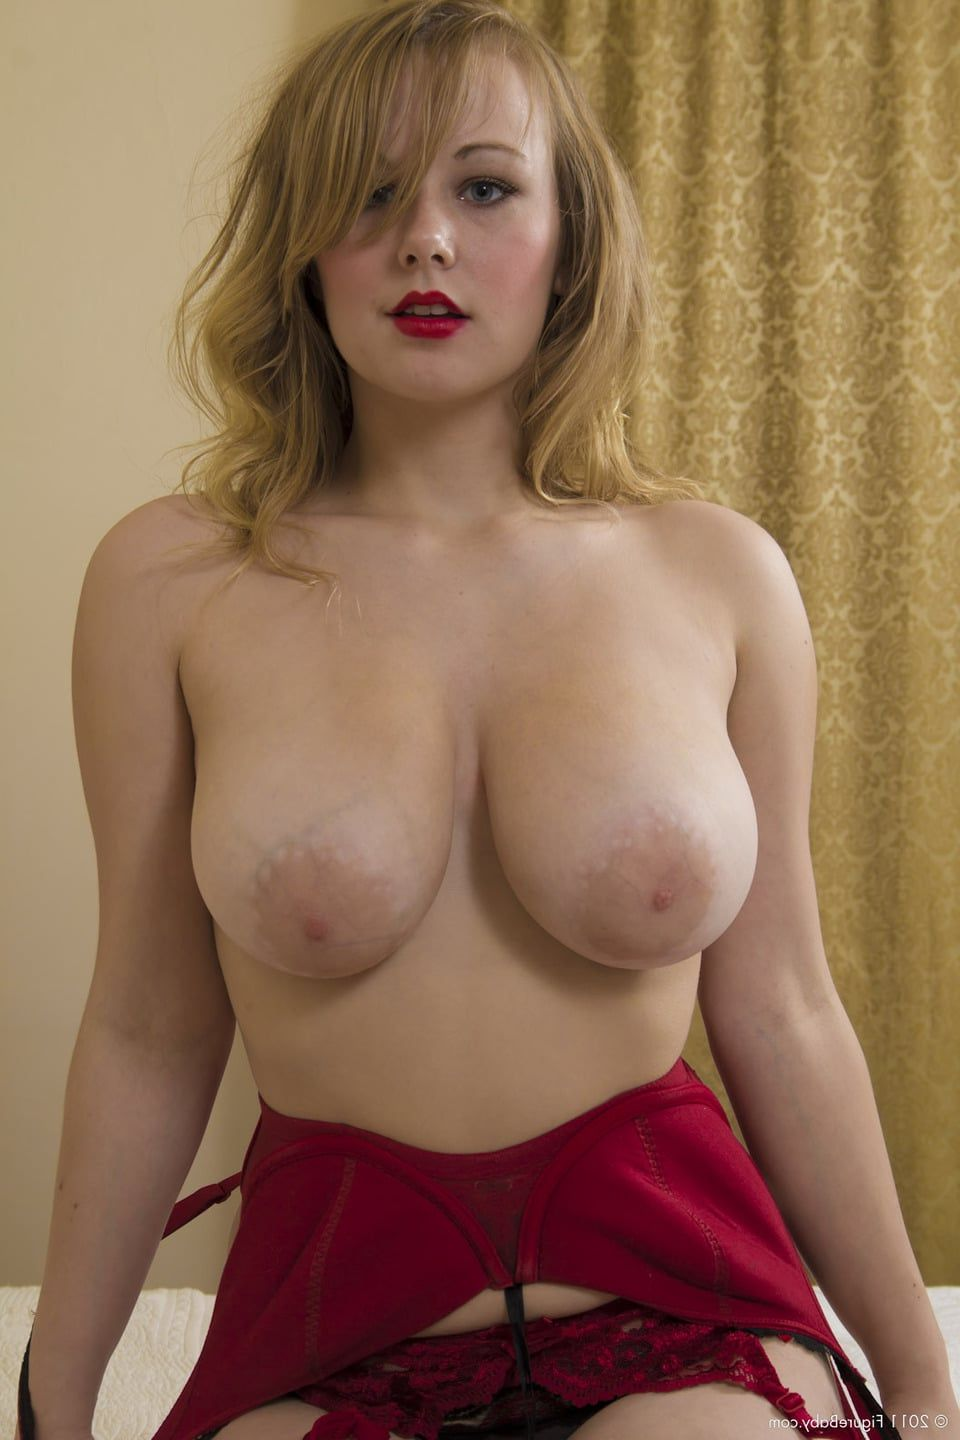 Images For Nothing -Russian Teen With Huge Tits-3875